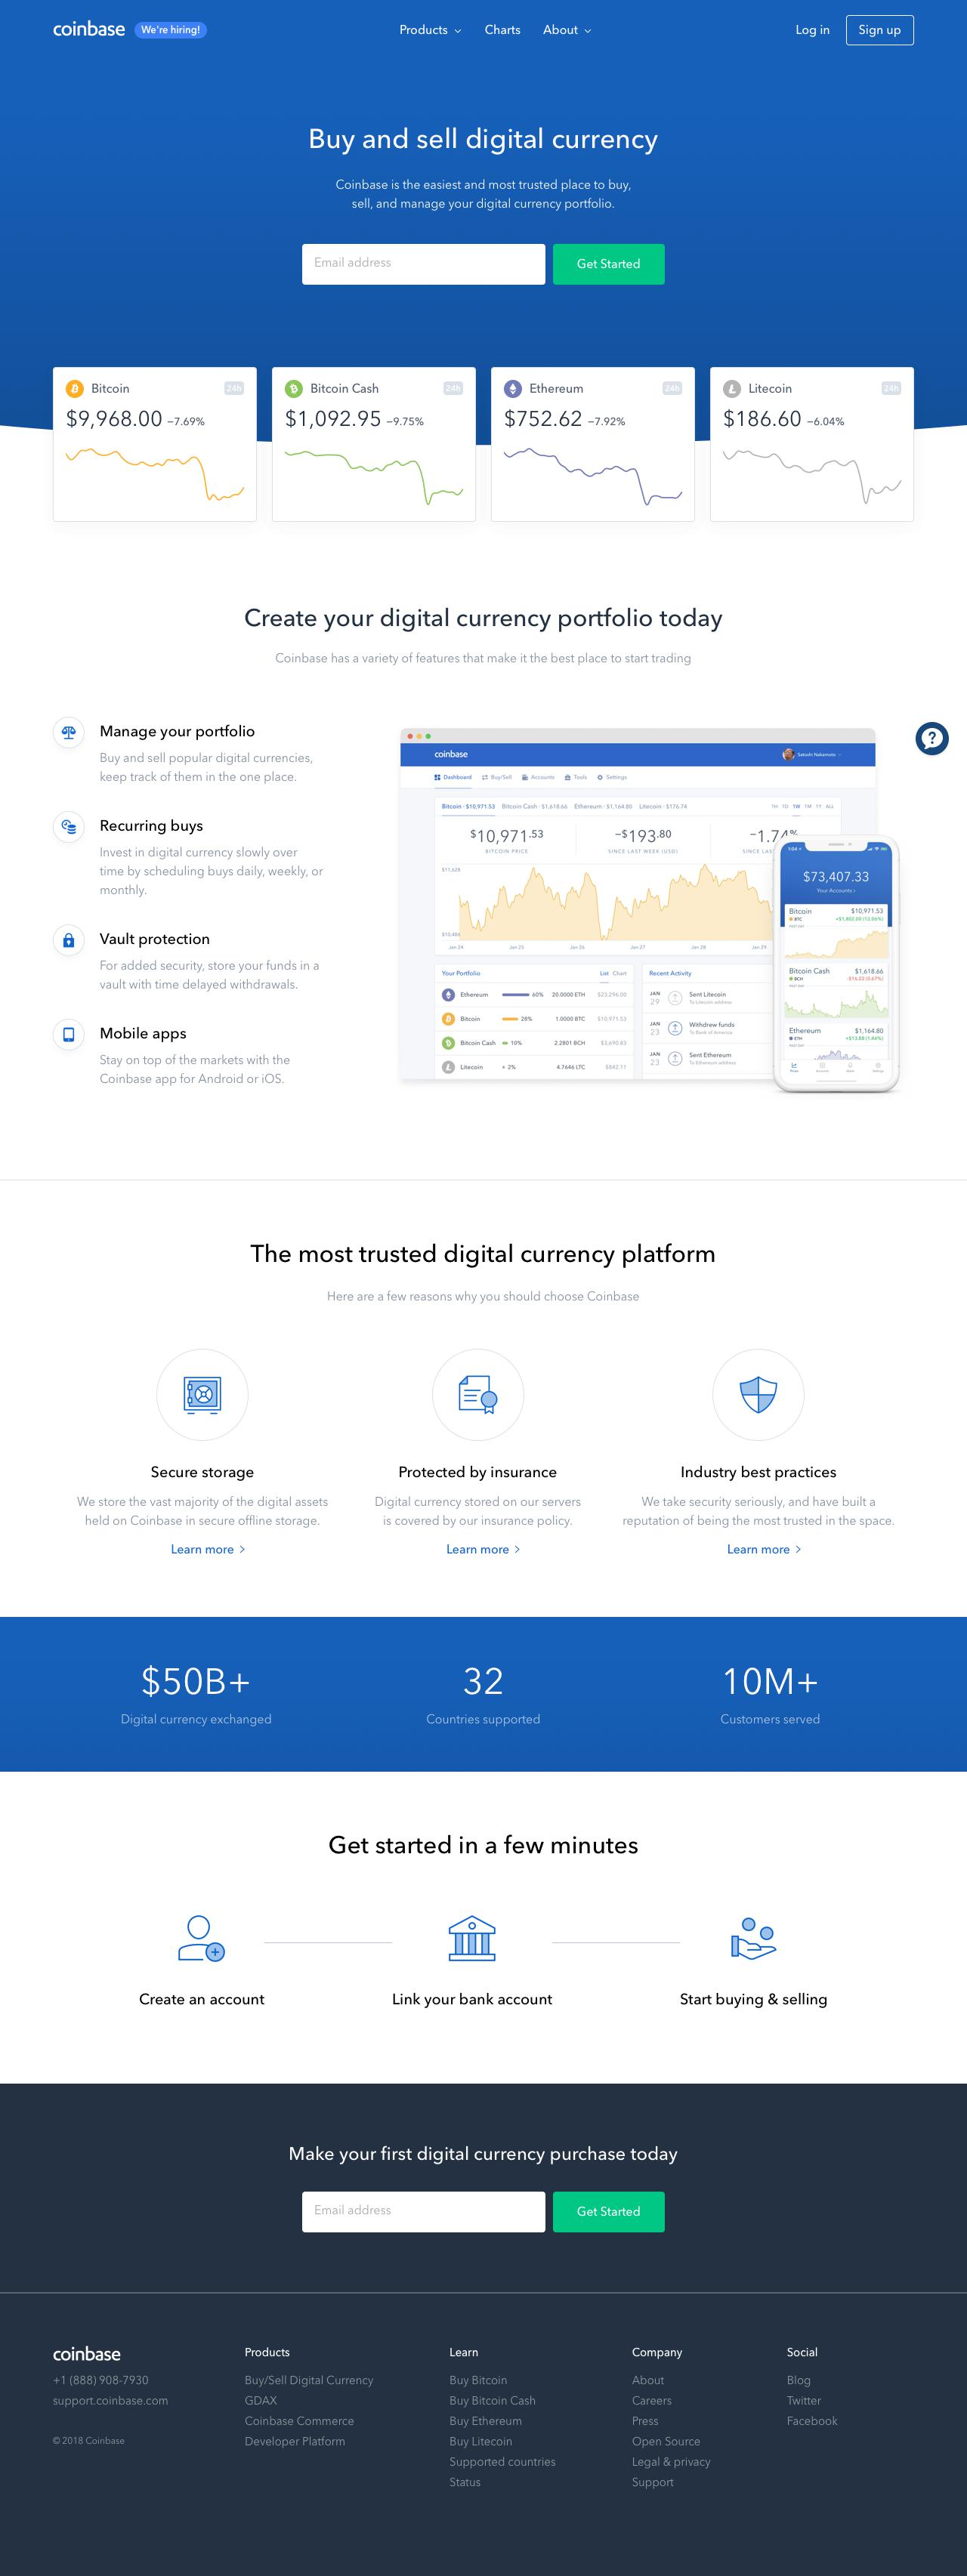 Screenshot of coinbase.com - Buy/Sell Digital Currency - Coinbase - captured March 7, 2018